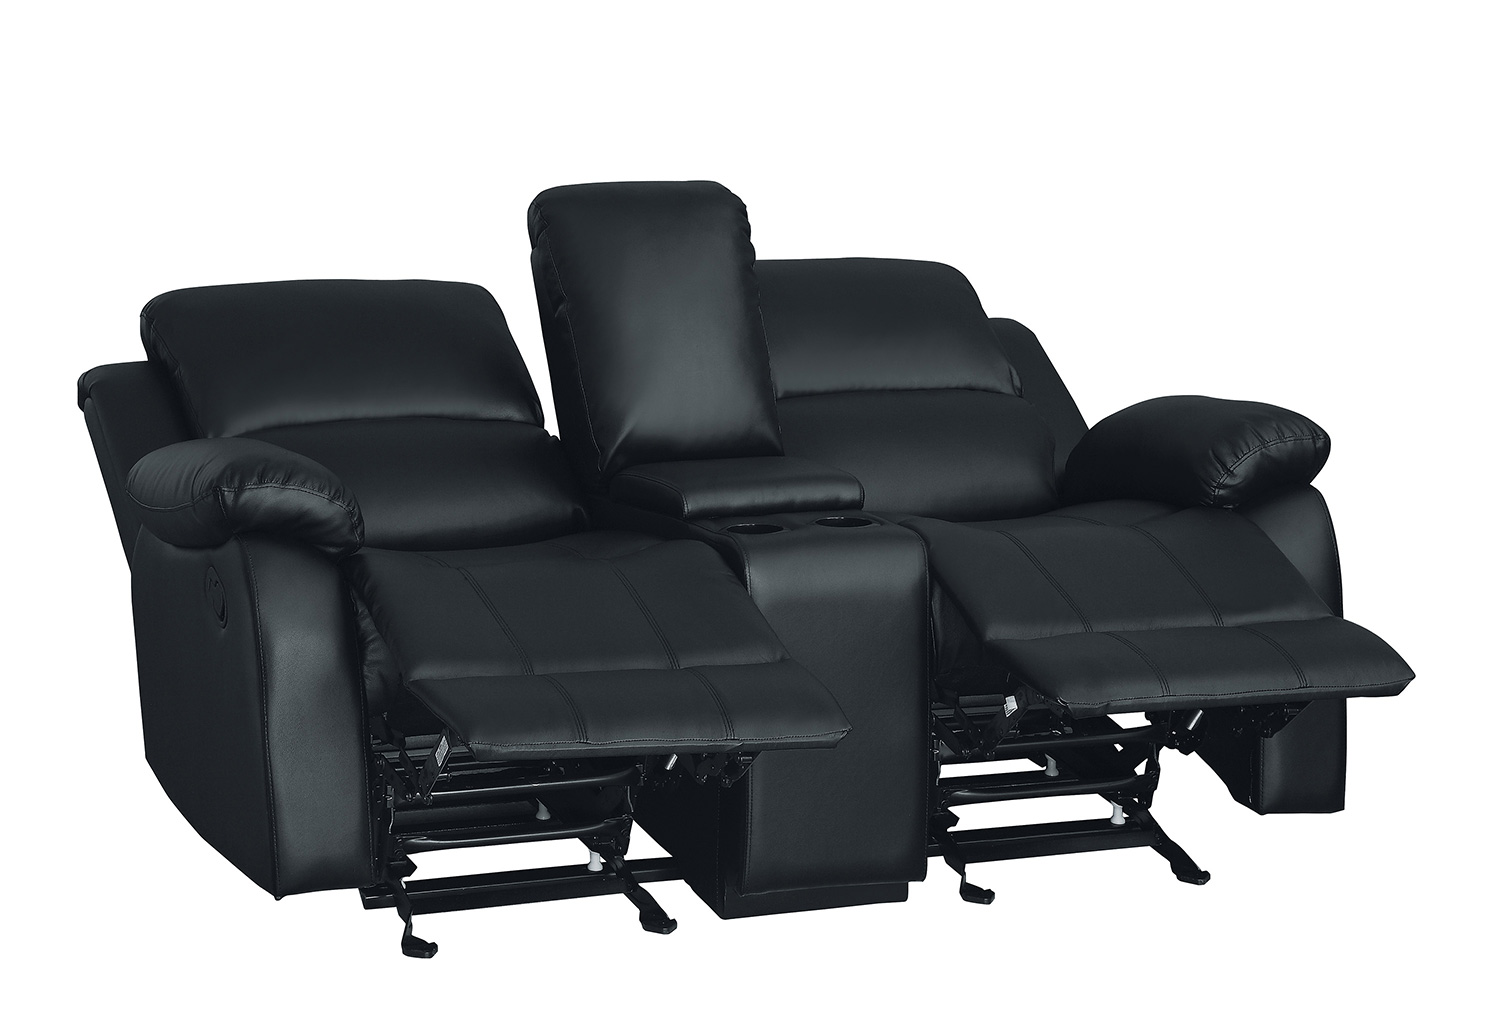 Homelegance Clarkdale Double Glider Reclining Love Seat With Center Console - Black